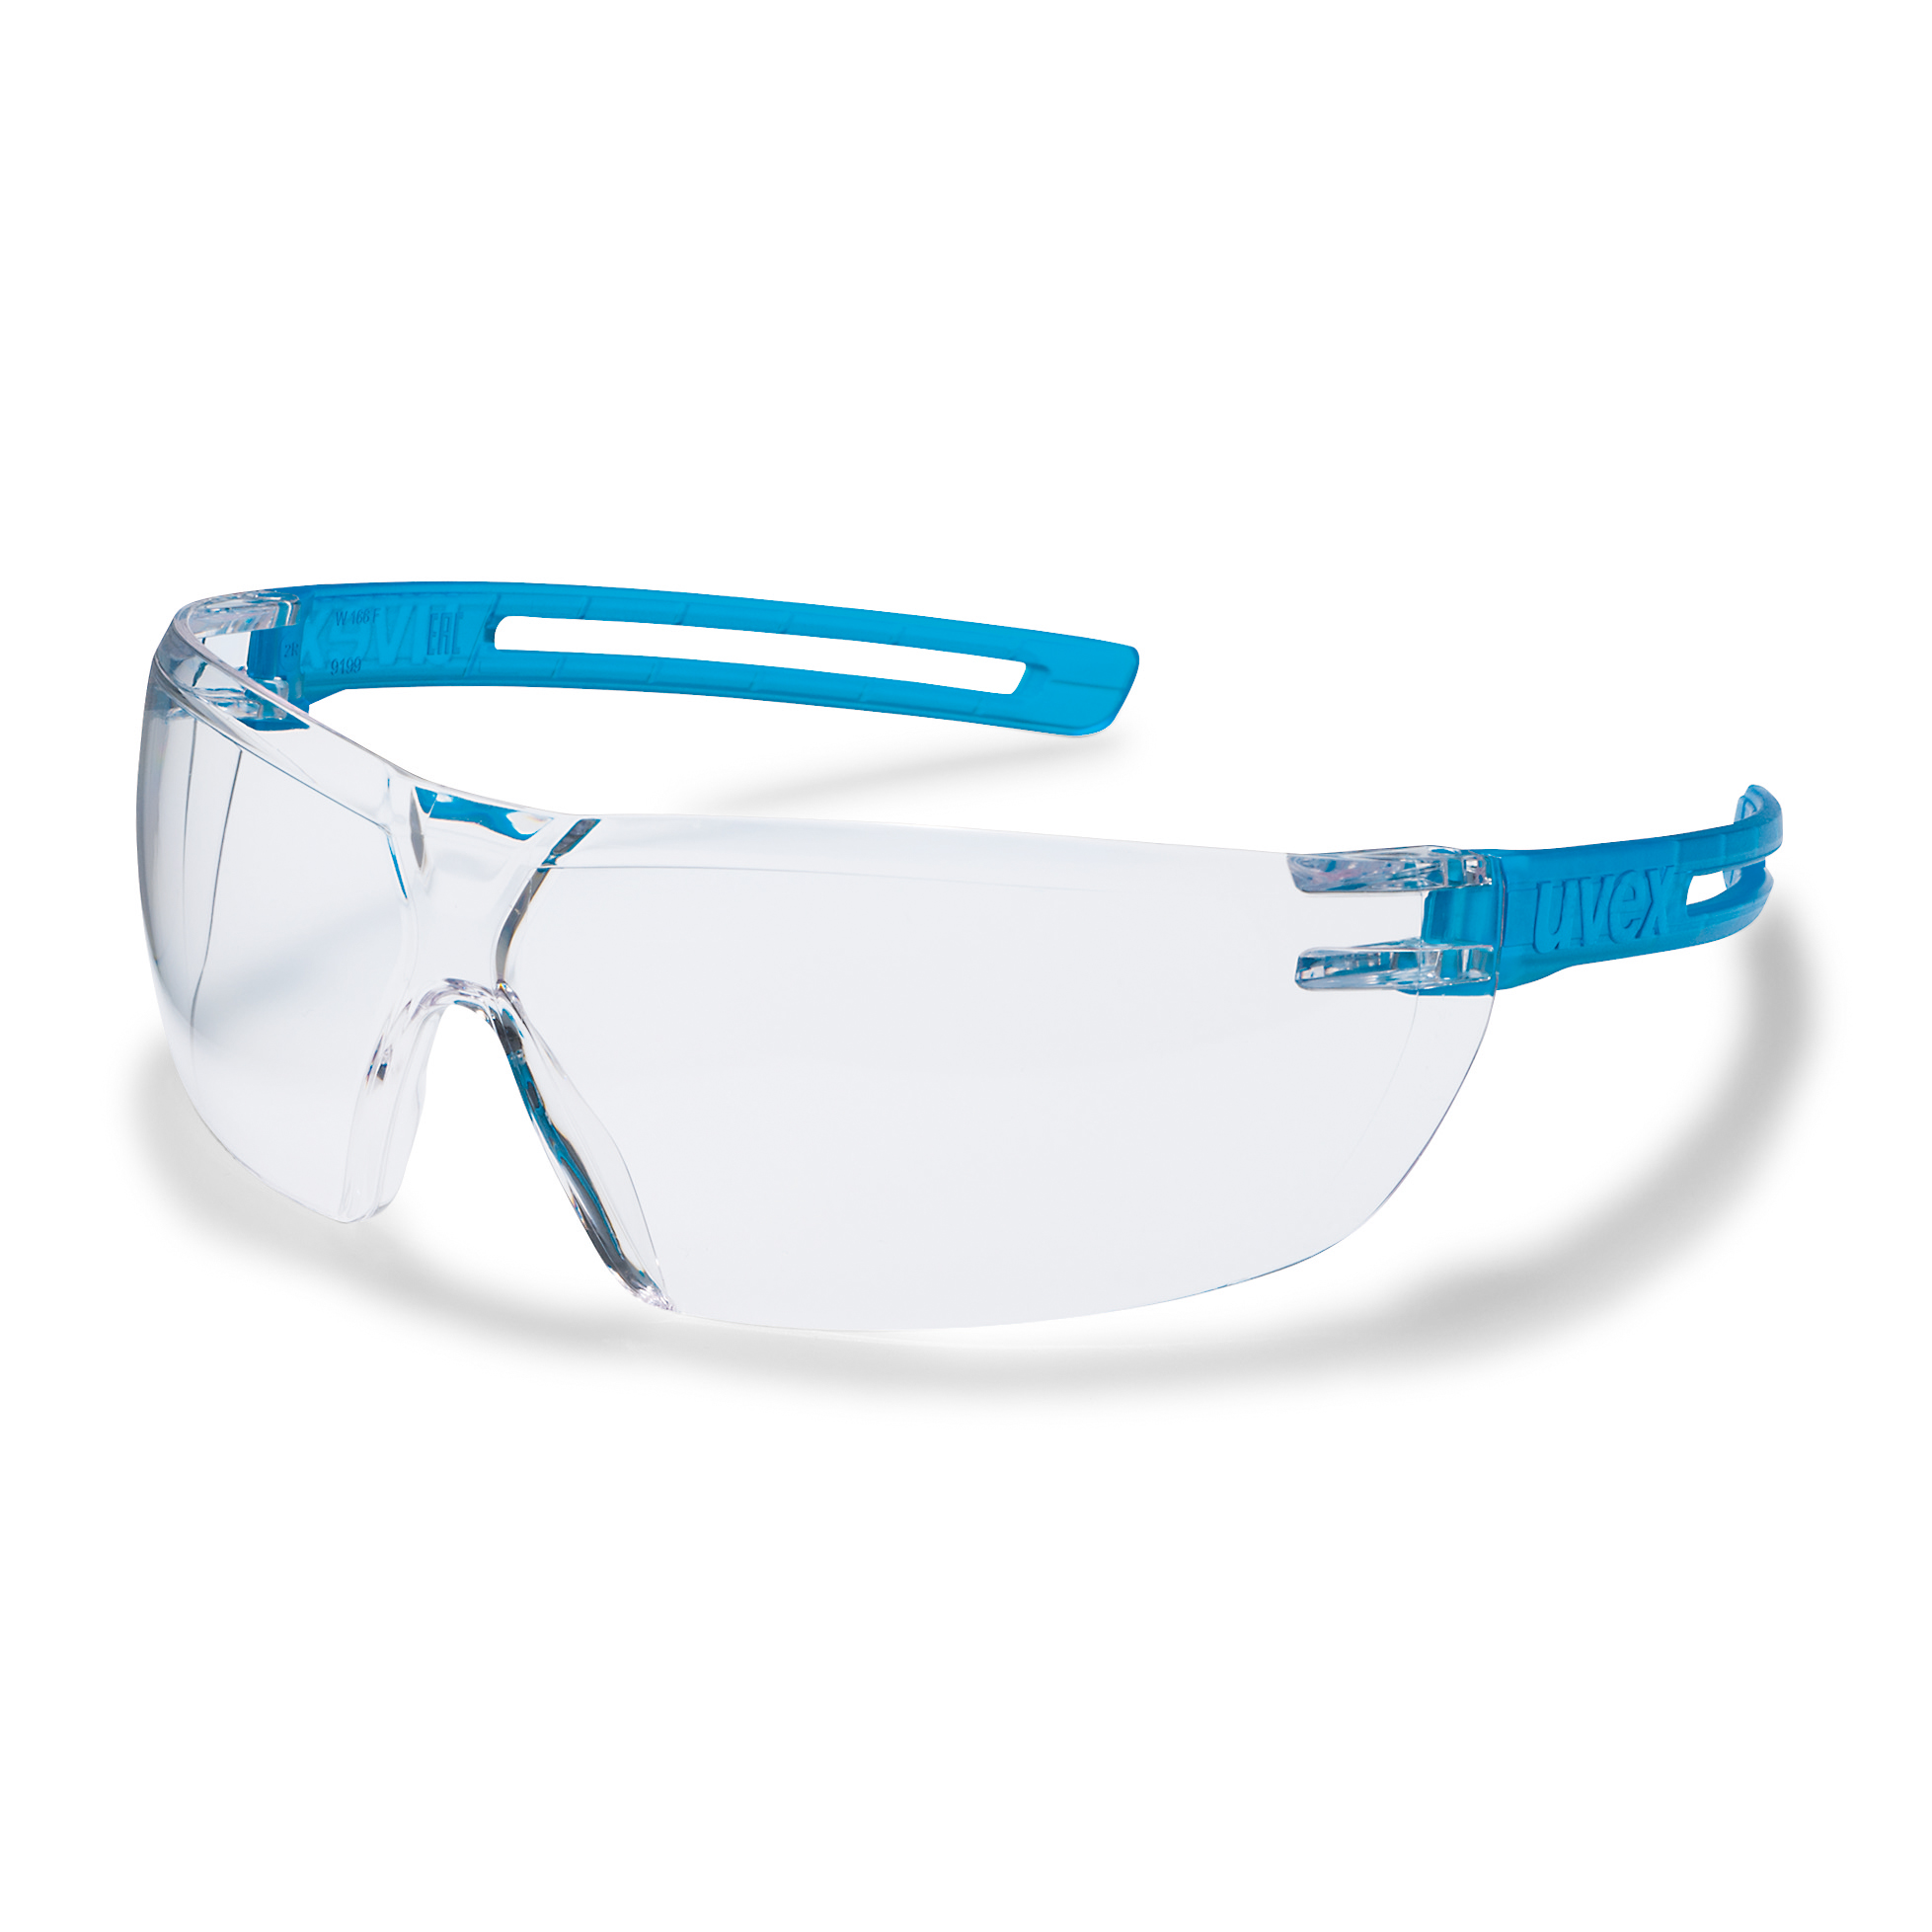 81e6cda492d0 Safety Glasses | Safety Googles | uvex Protective Eyewear